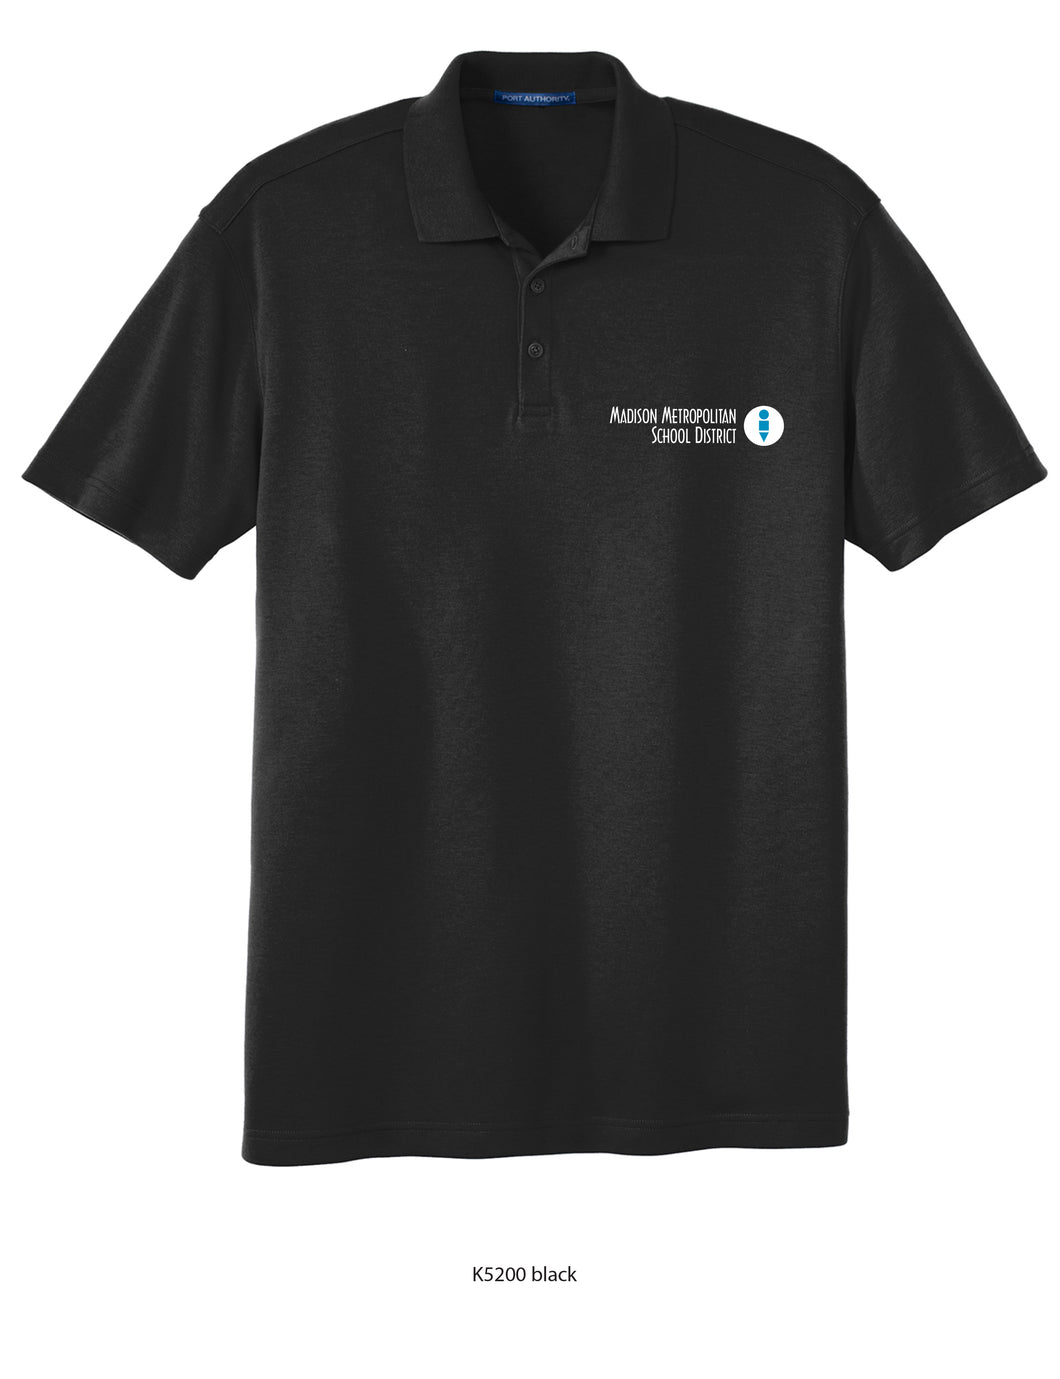 MMSD Logo, Unisex Short-sleeve Polo, Embroidered